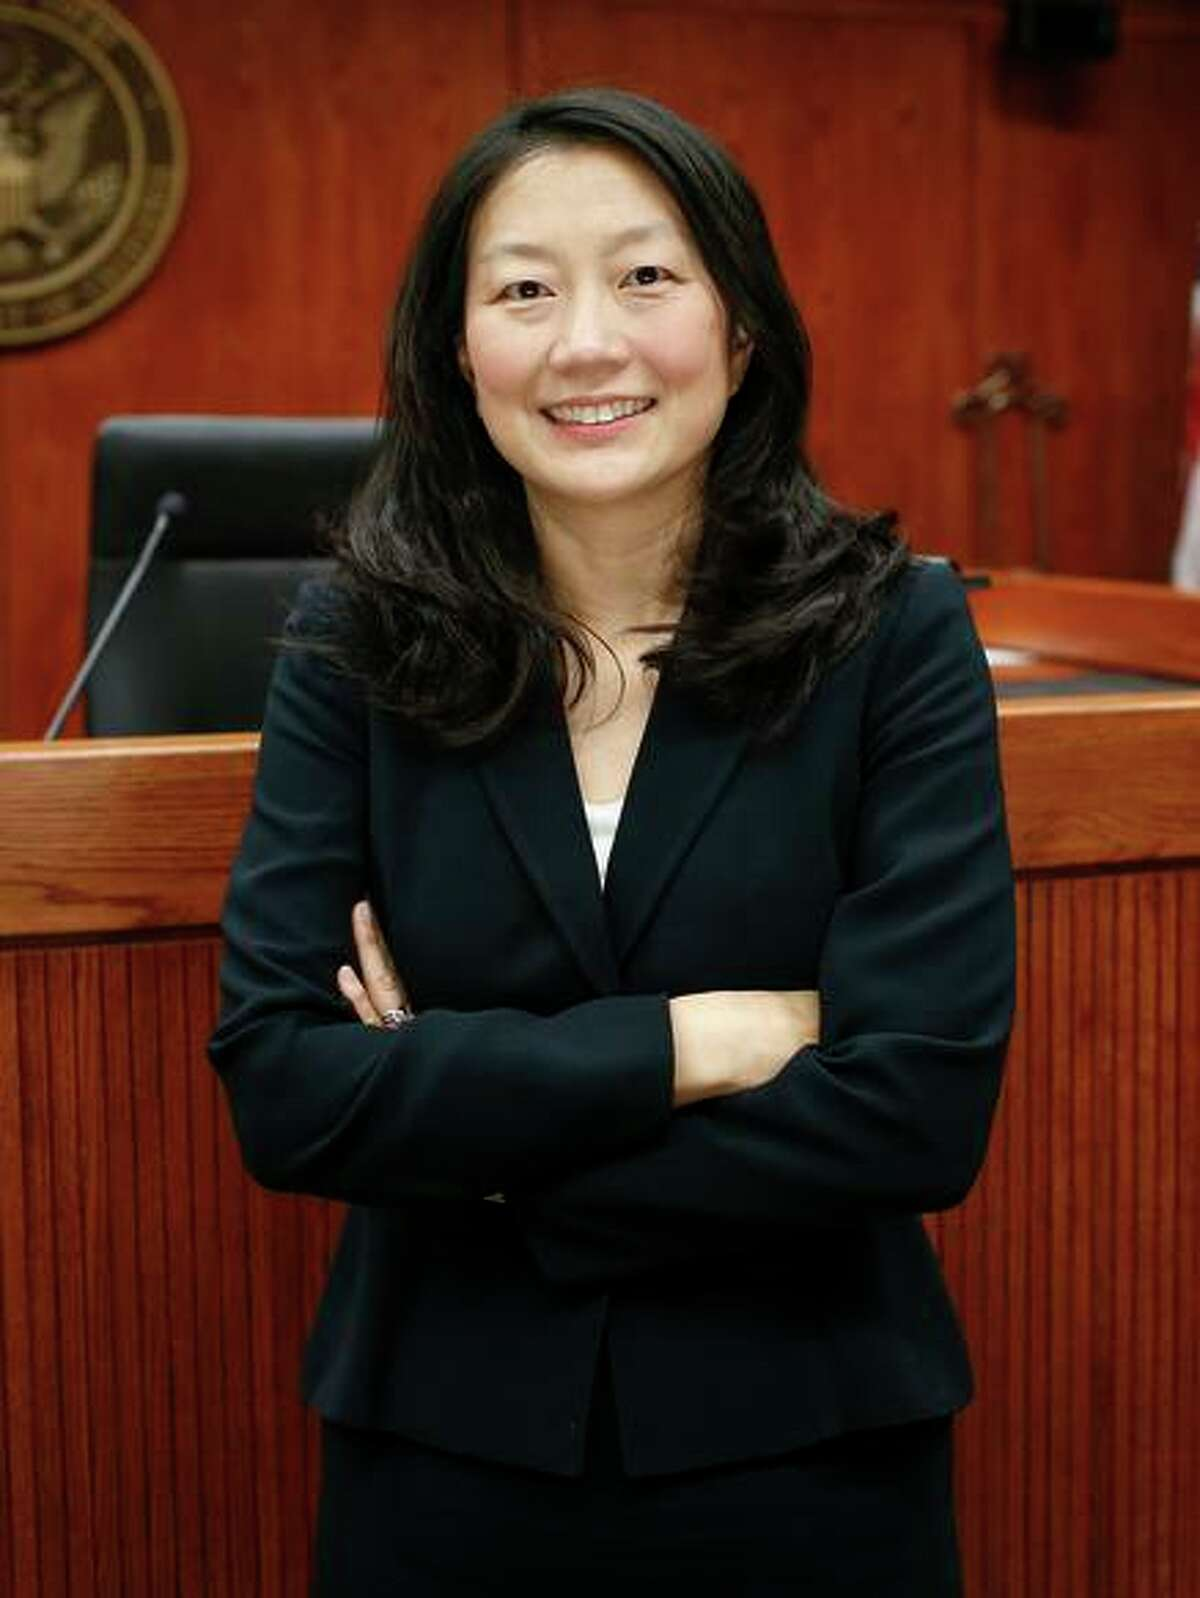 United States District Court Judge Lucy Koh has ruled the 2020 census count must continue.